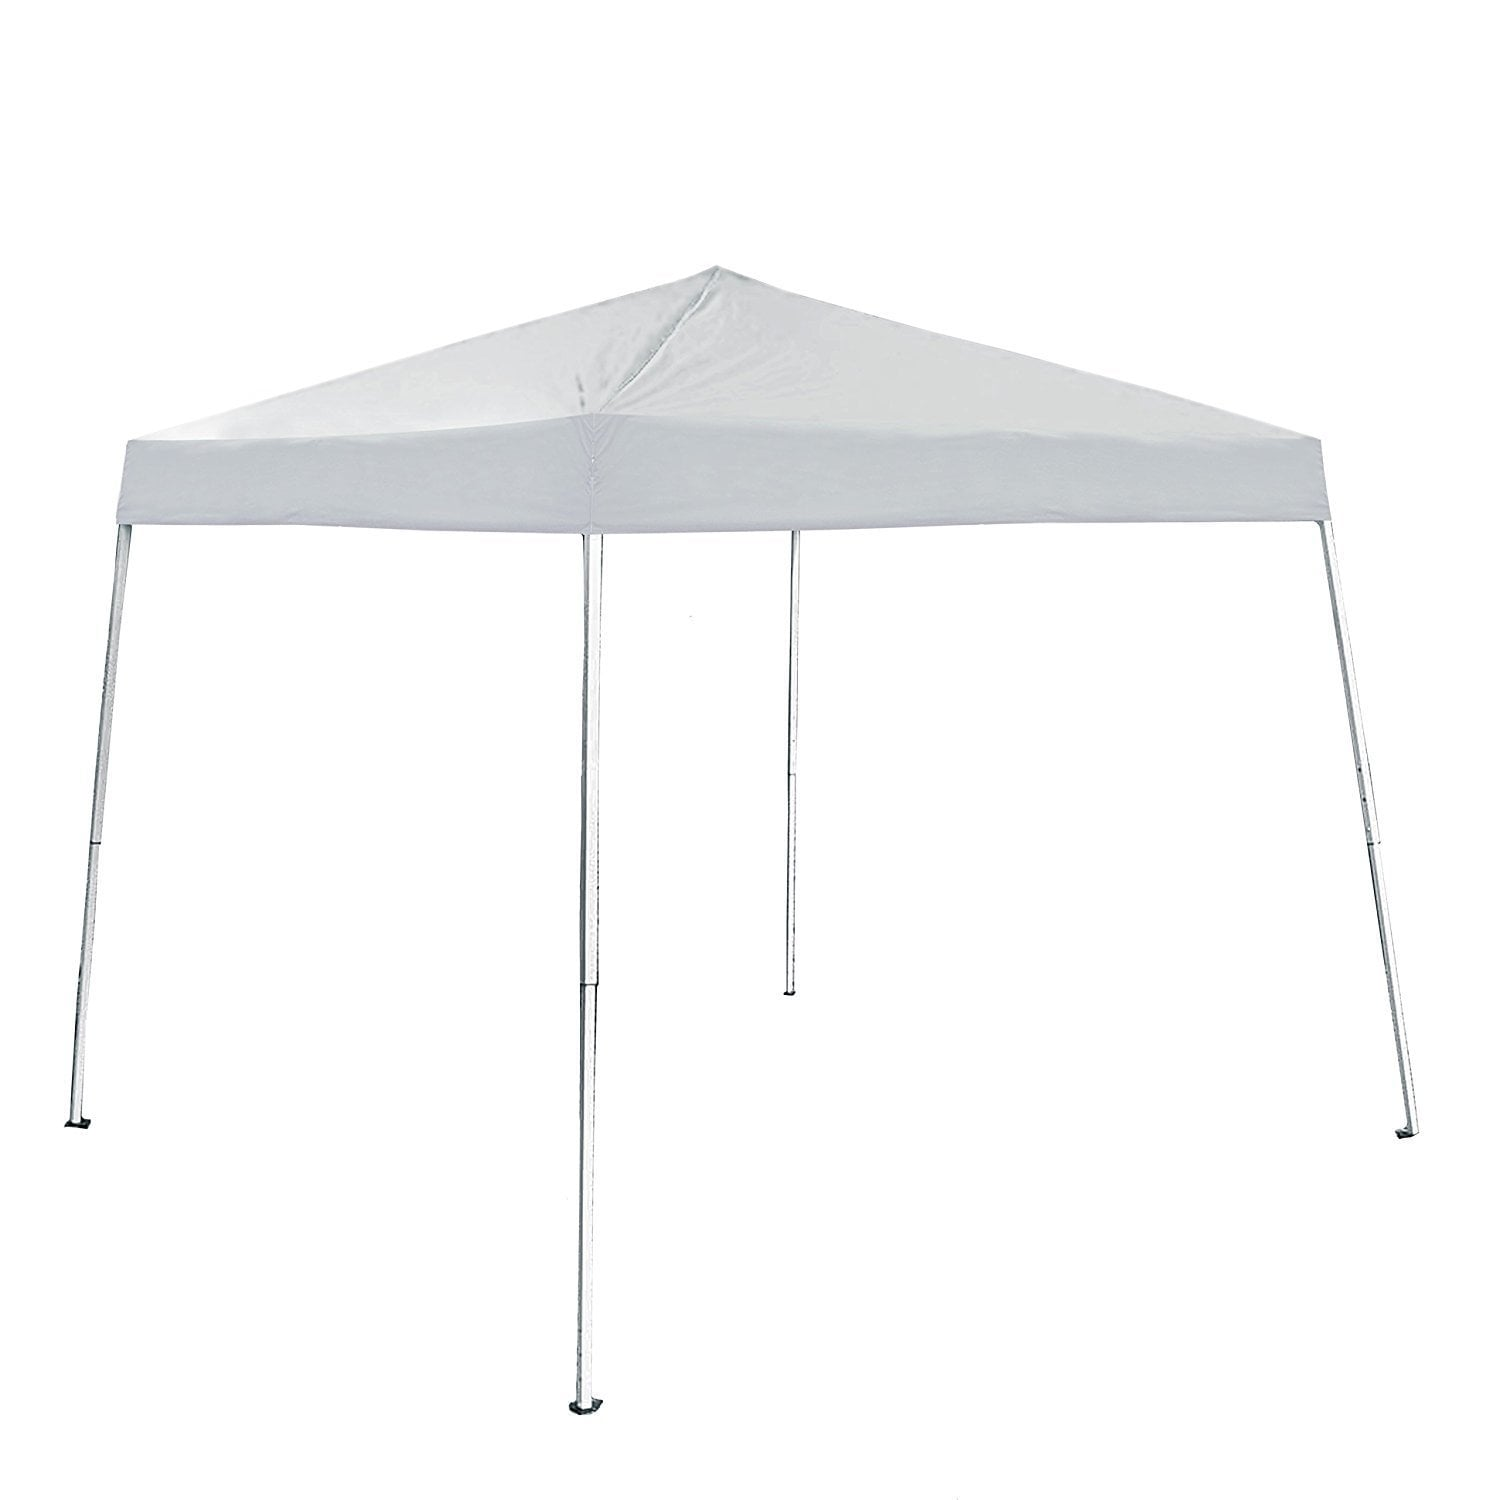 Aleko 8x8 Ft Foldable Outdoor Events Picnic Party White G...